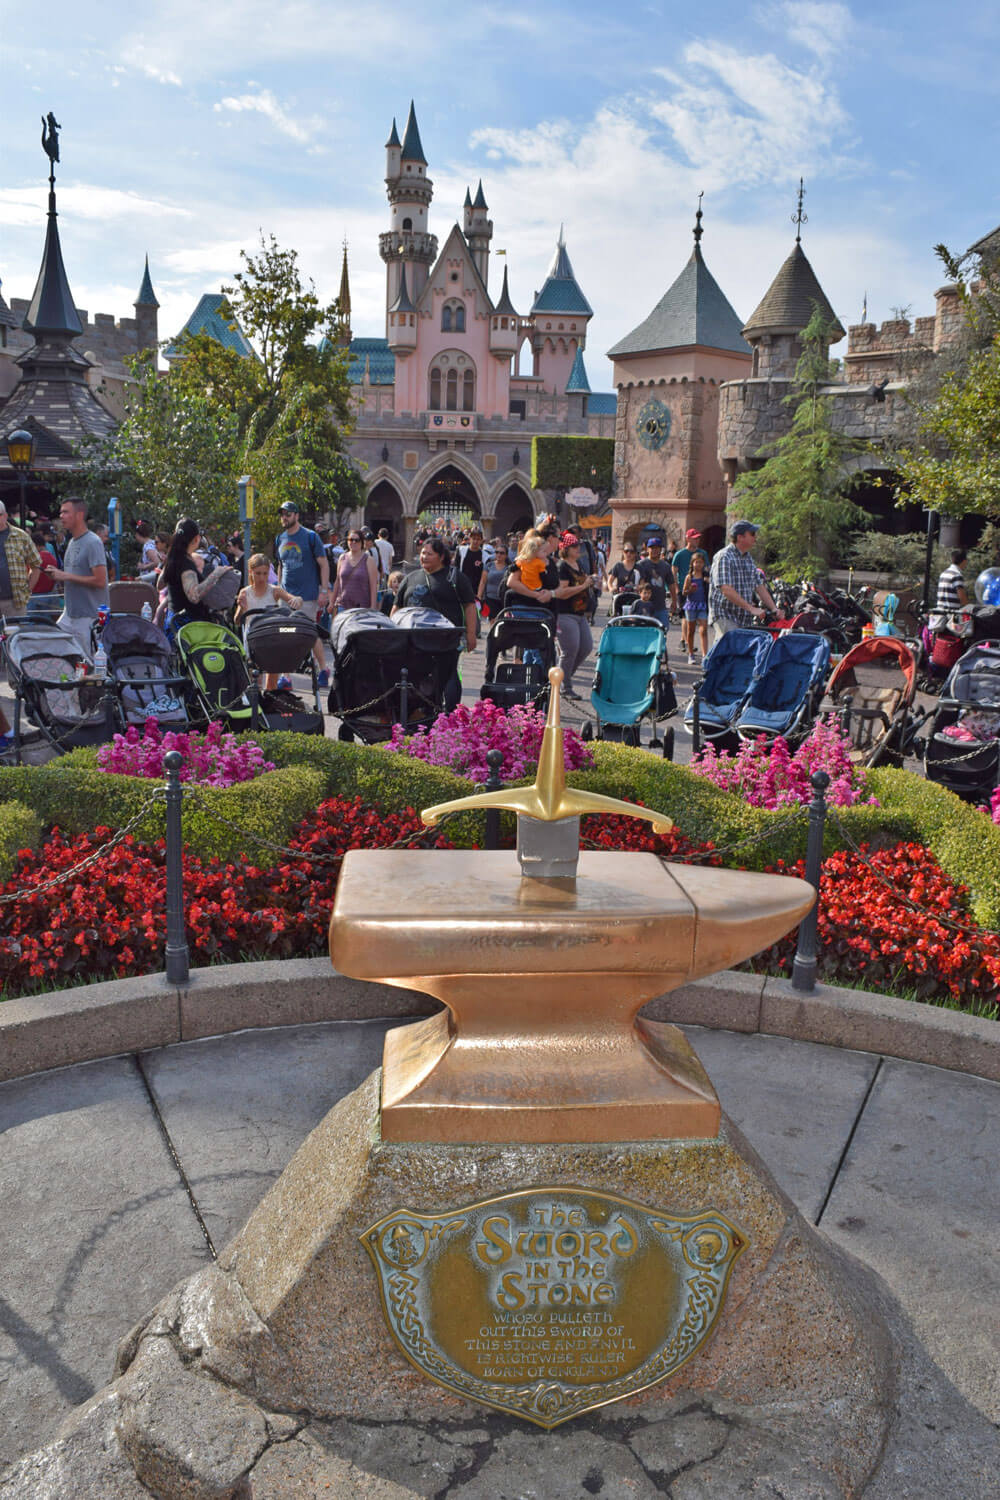 Tips for Using a Stroller at Disneyland